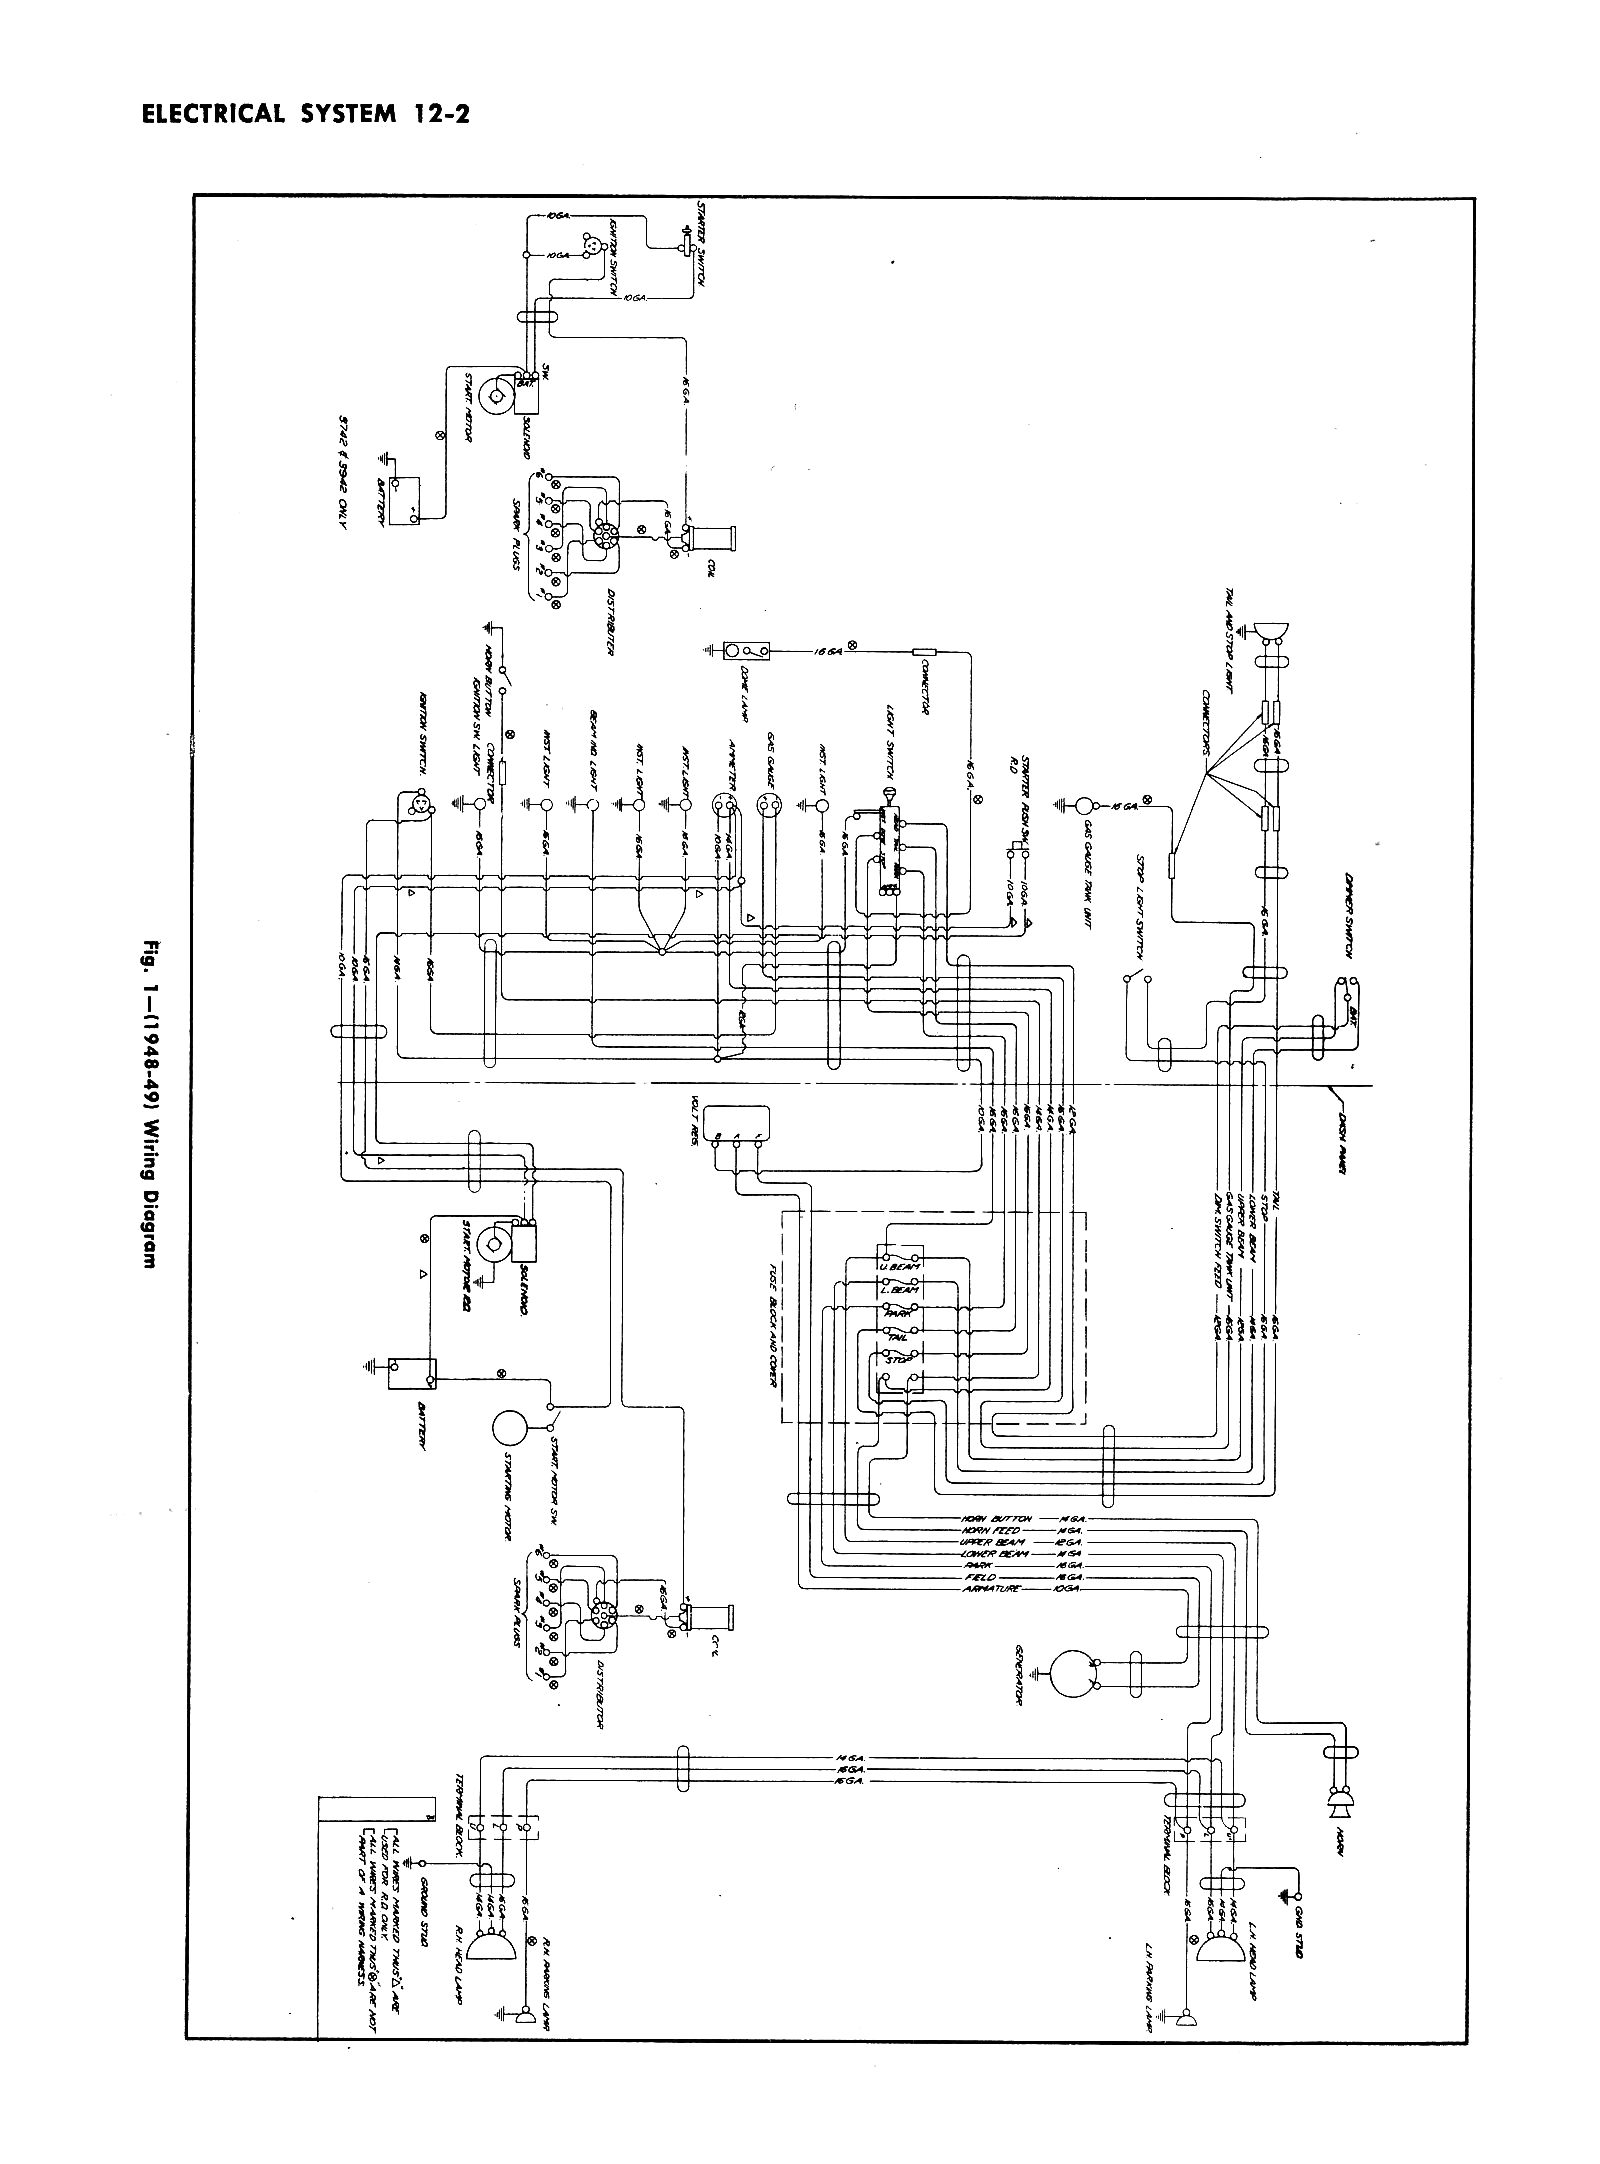 Diagram Wiring Diagram For 1968 Chevy Truck Full Version Hd Quality Chevy Truck Pvdiagramxramon Annuncipagineverdi It